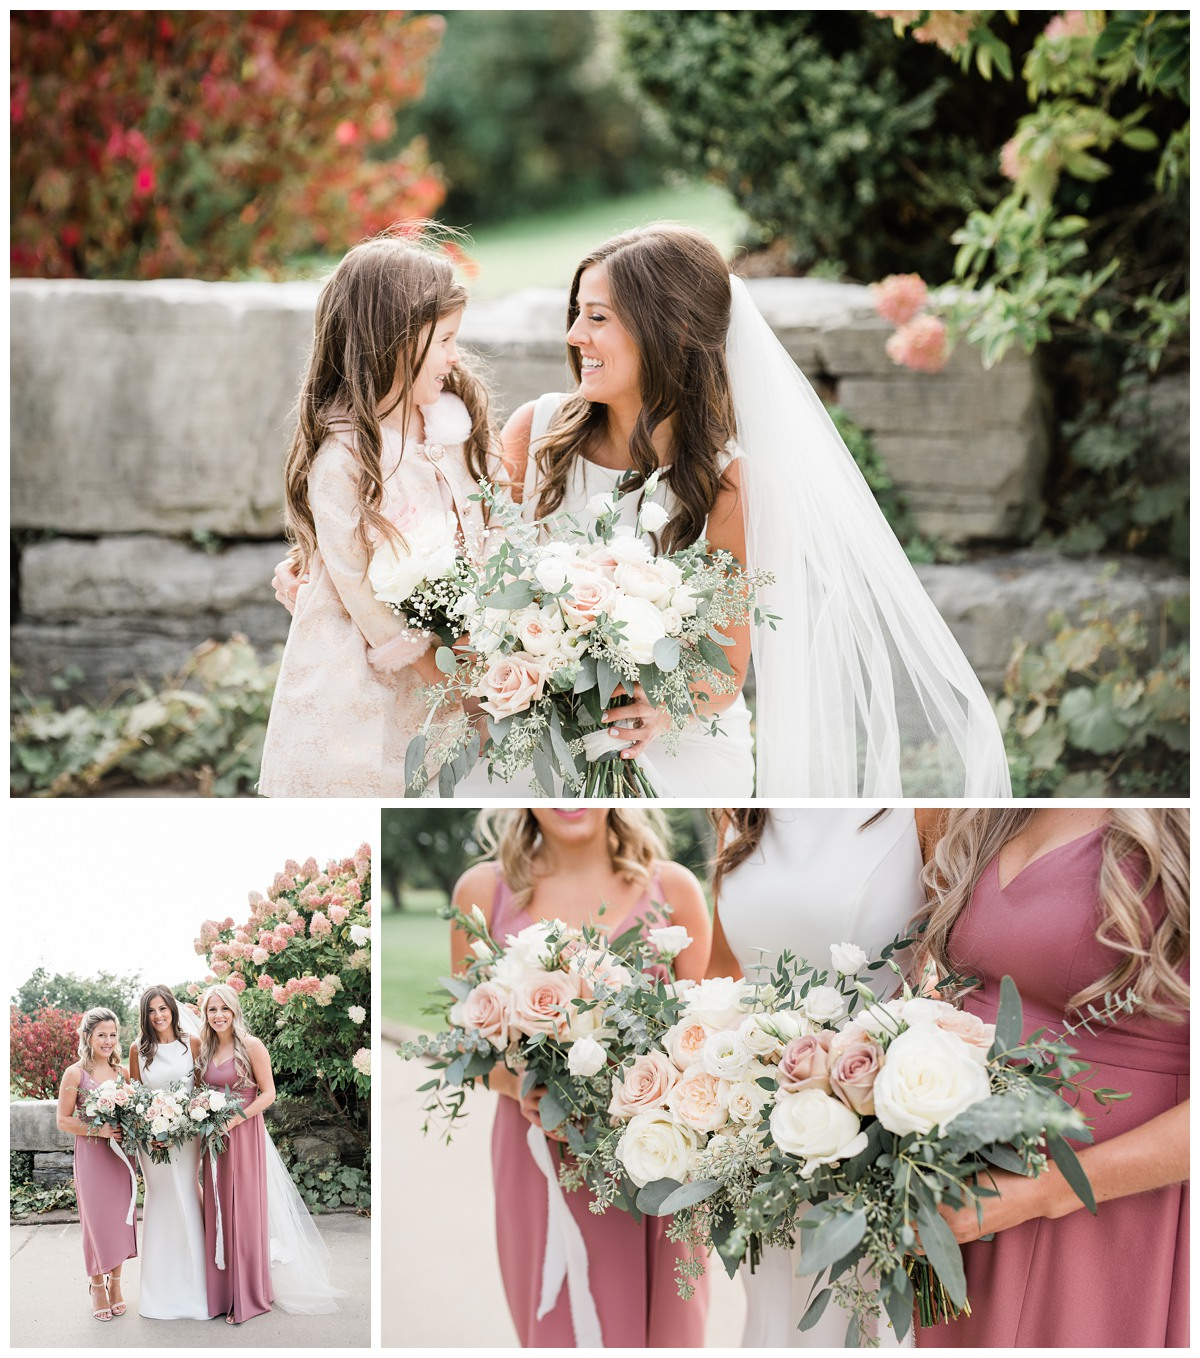 Collage of elegant bride and blush bridesmaids with stunning florals at Royal Ashburn in Whitby